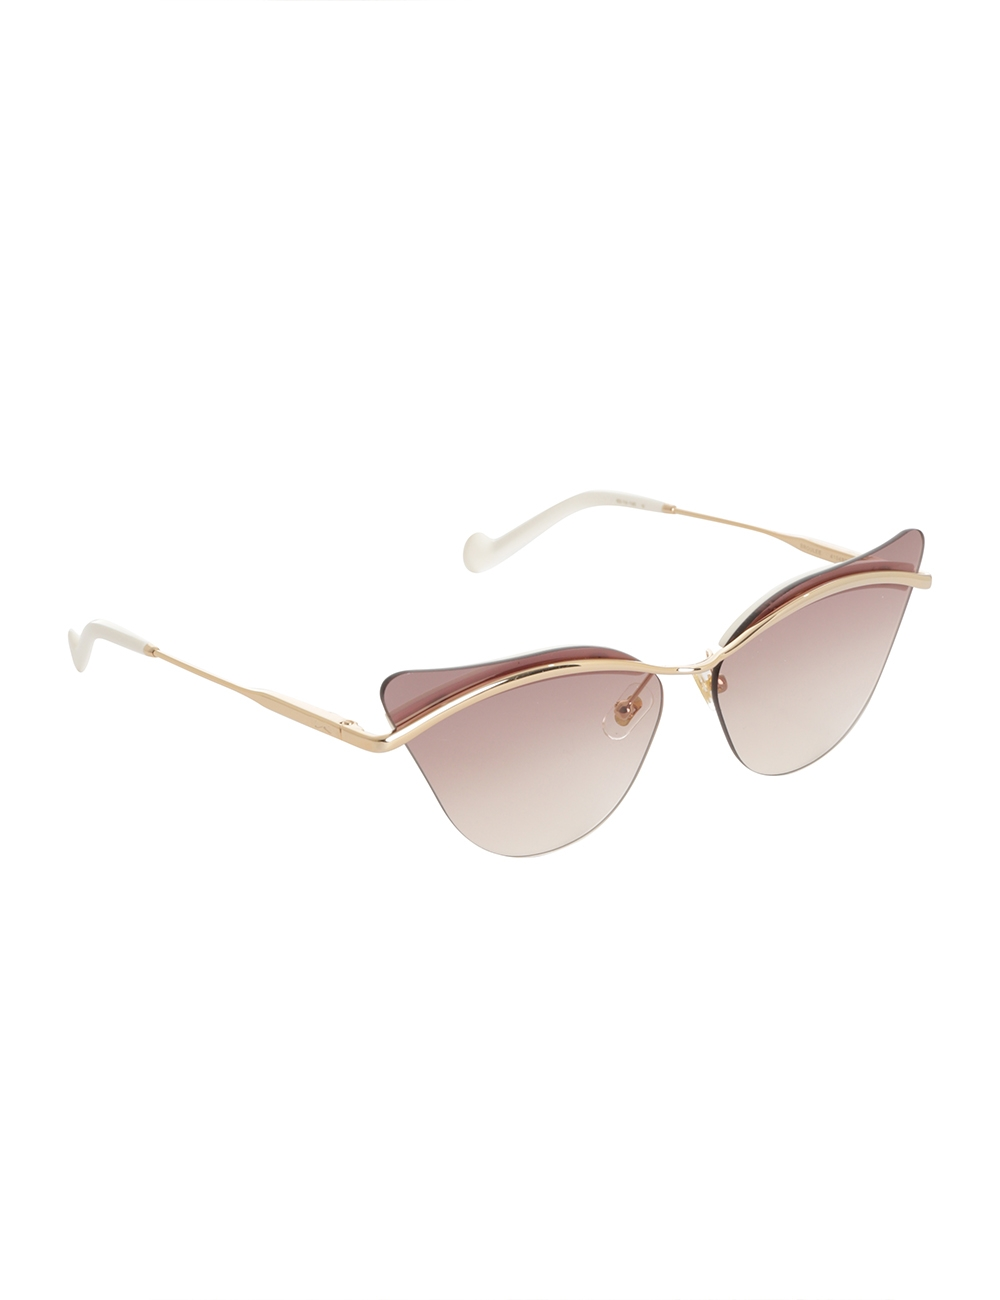 Broulee Sunglasses